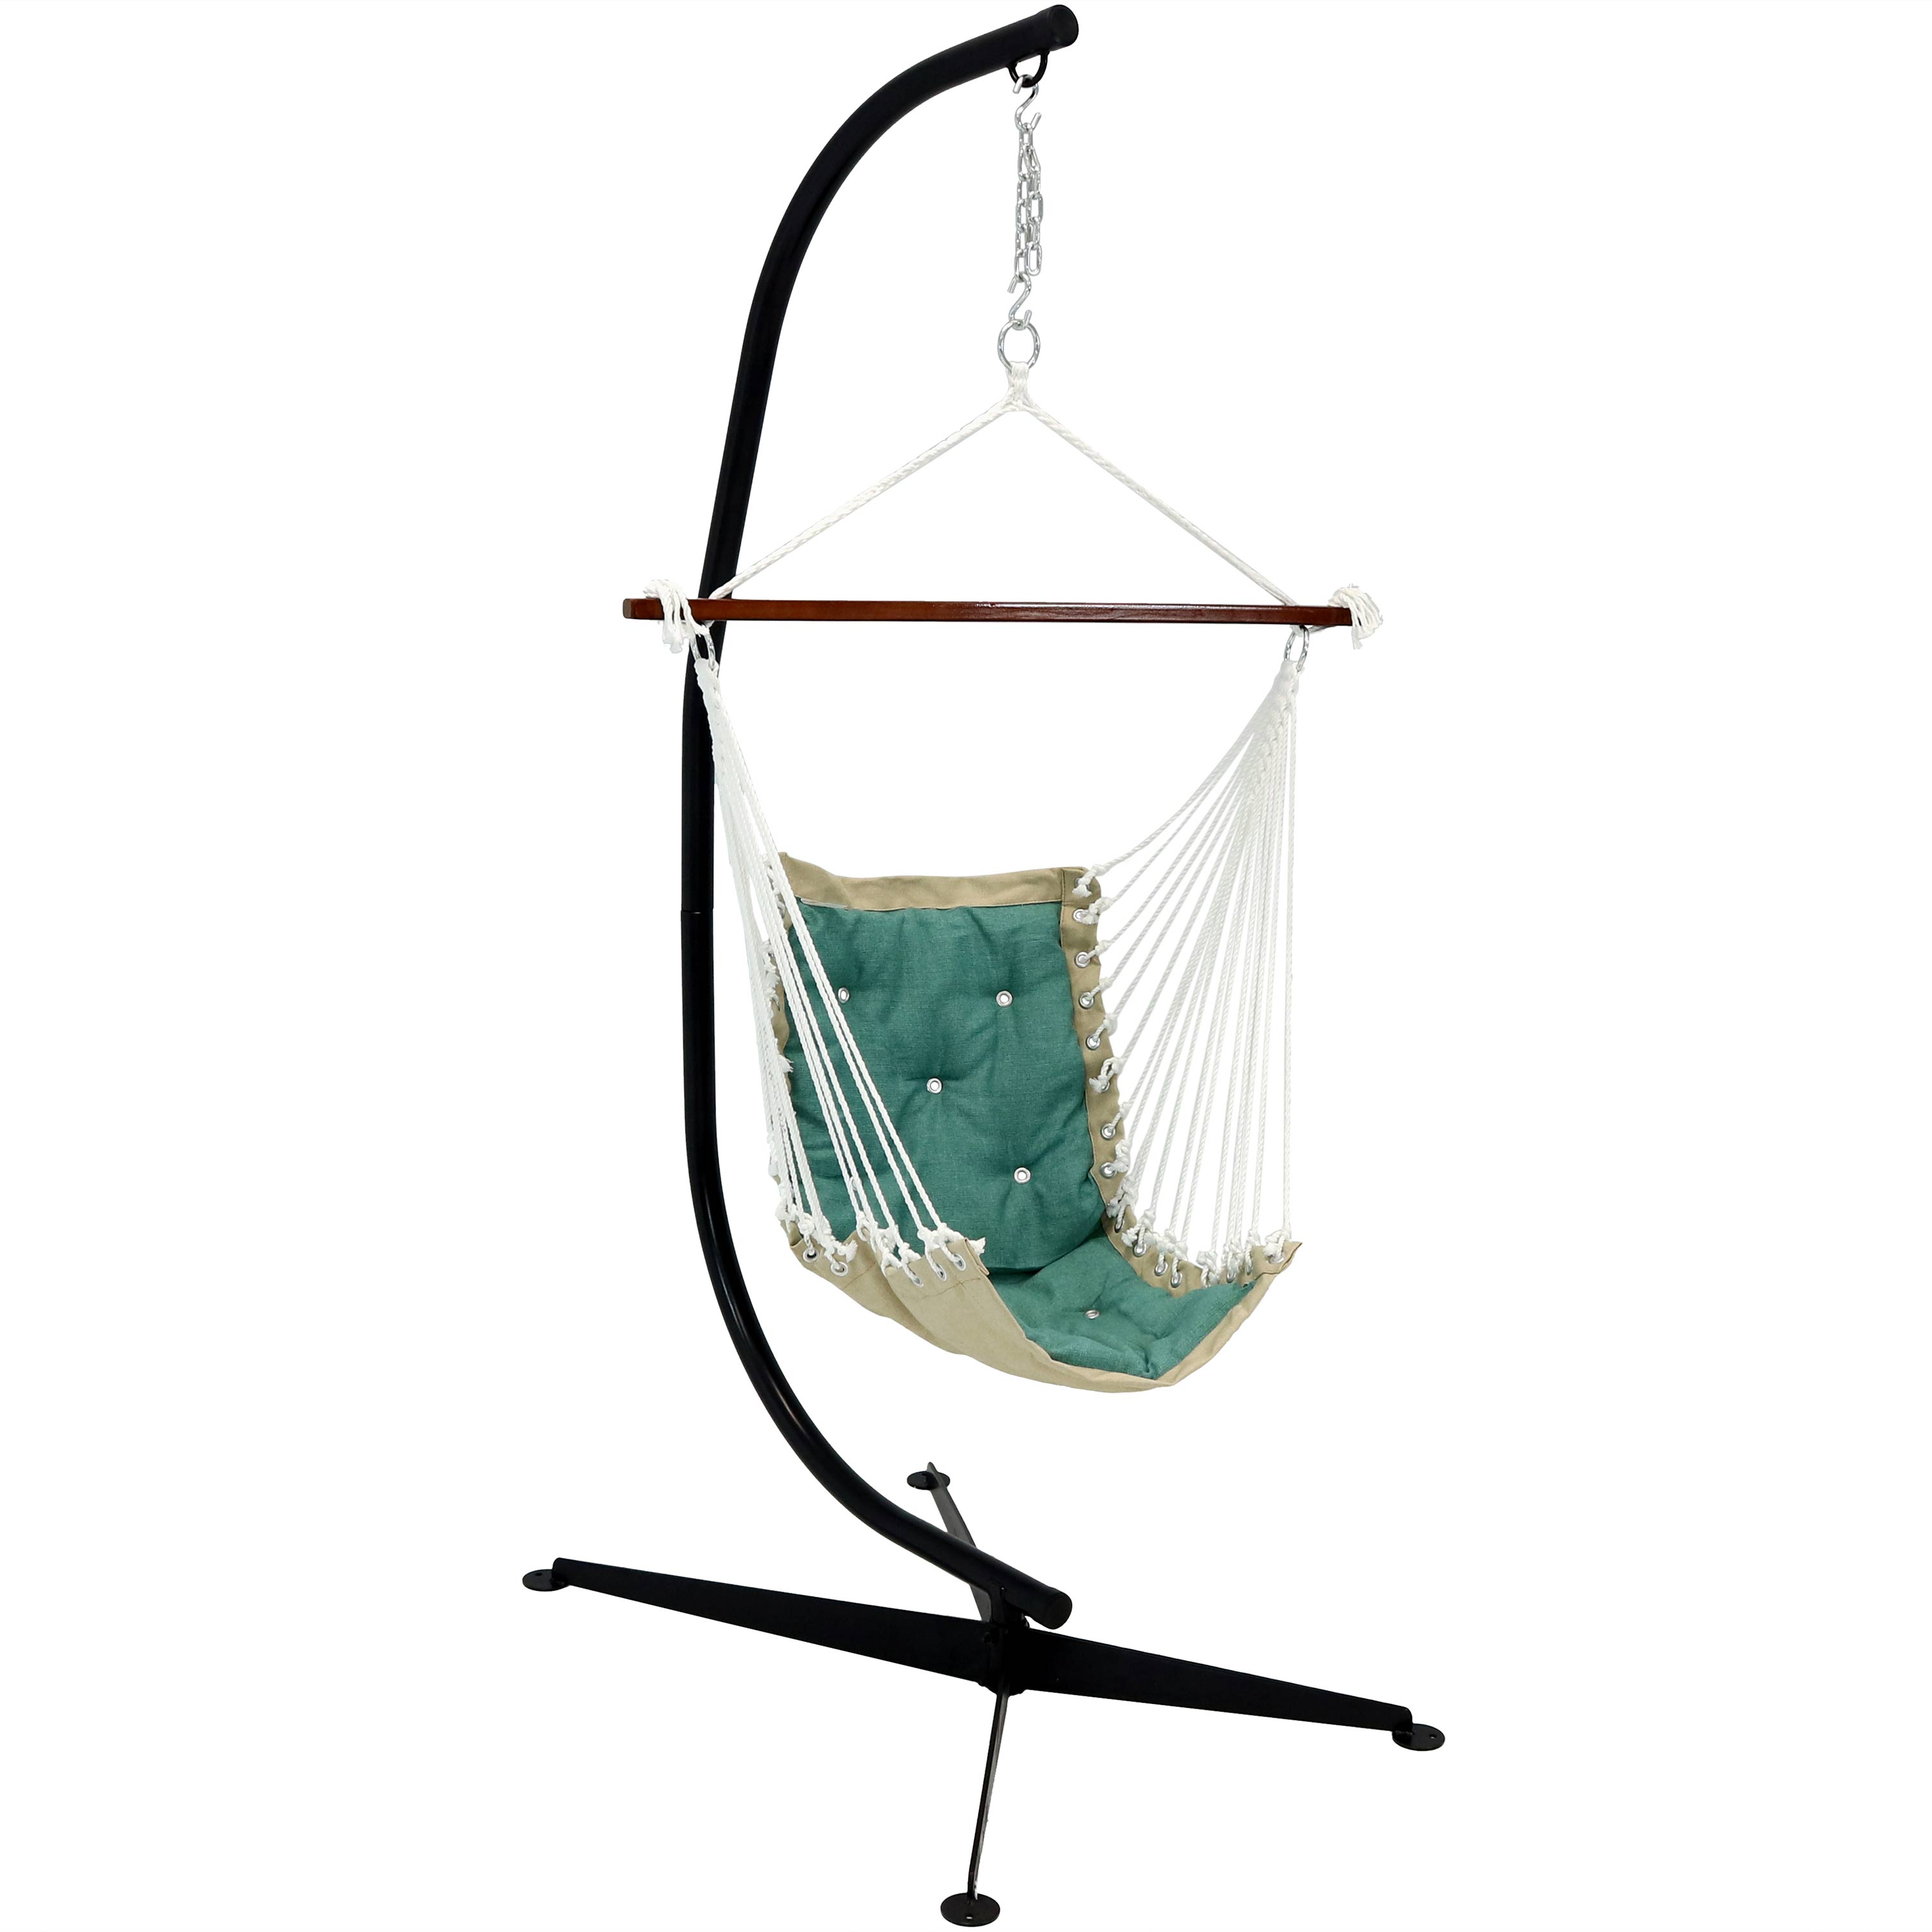 Tufted Hanging Rope Hammock Chair Stand Swing Seat Sea Green Photo